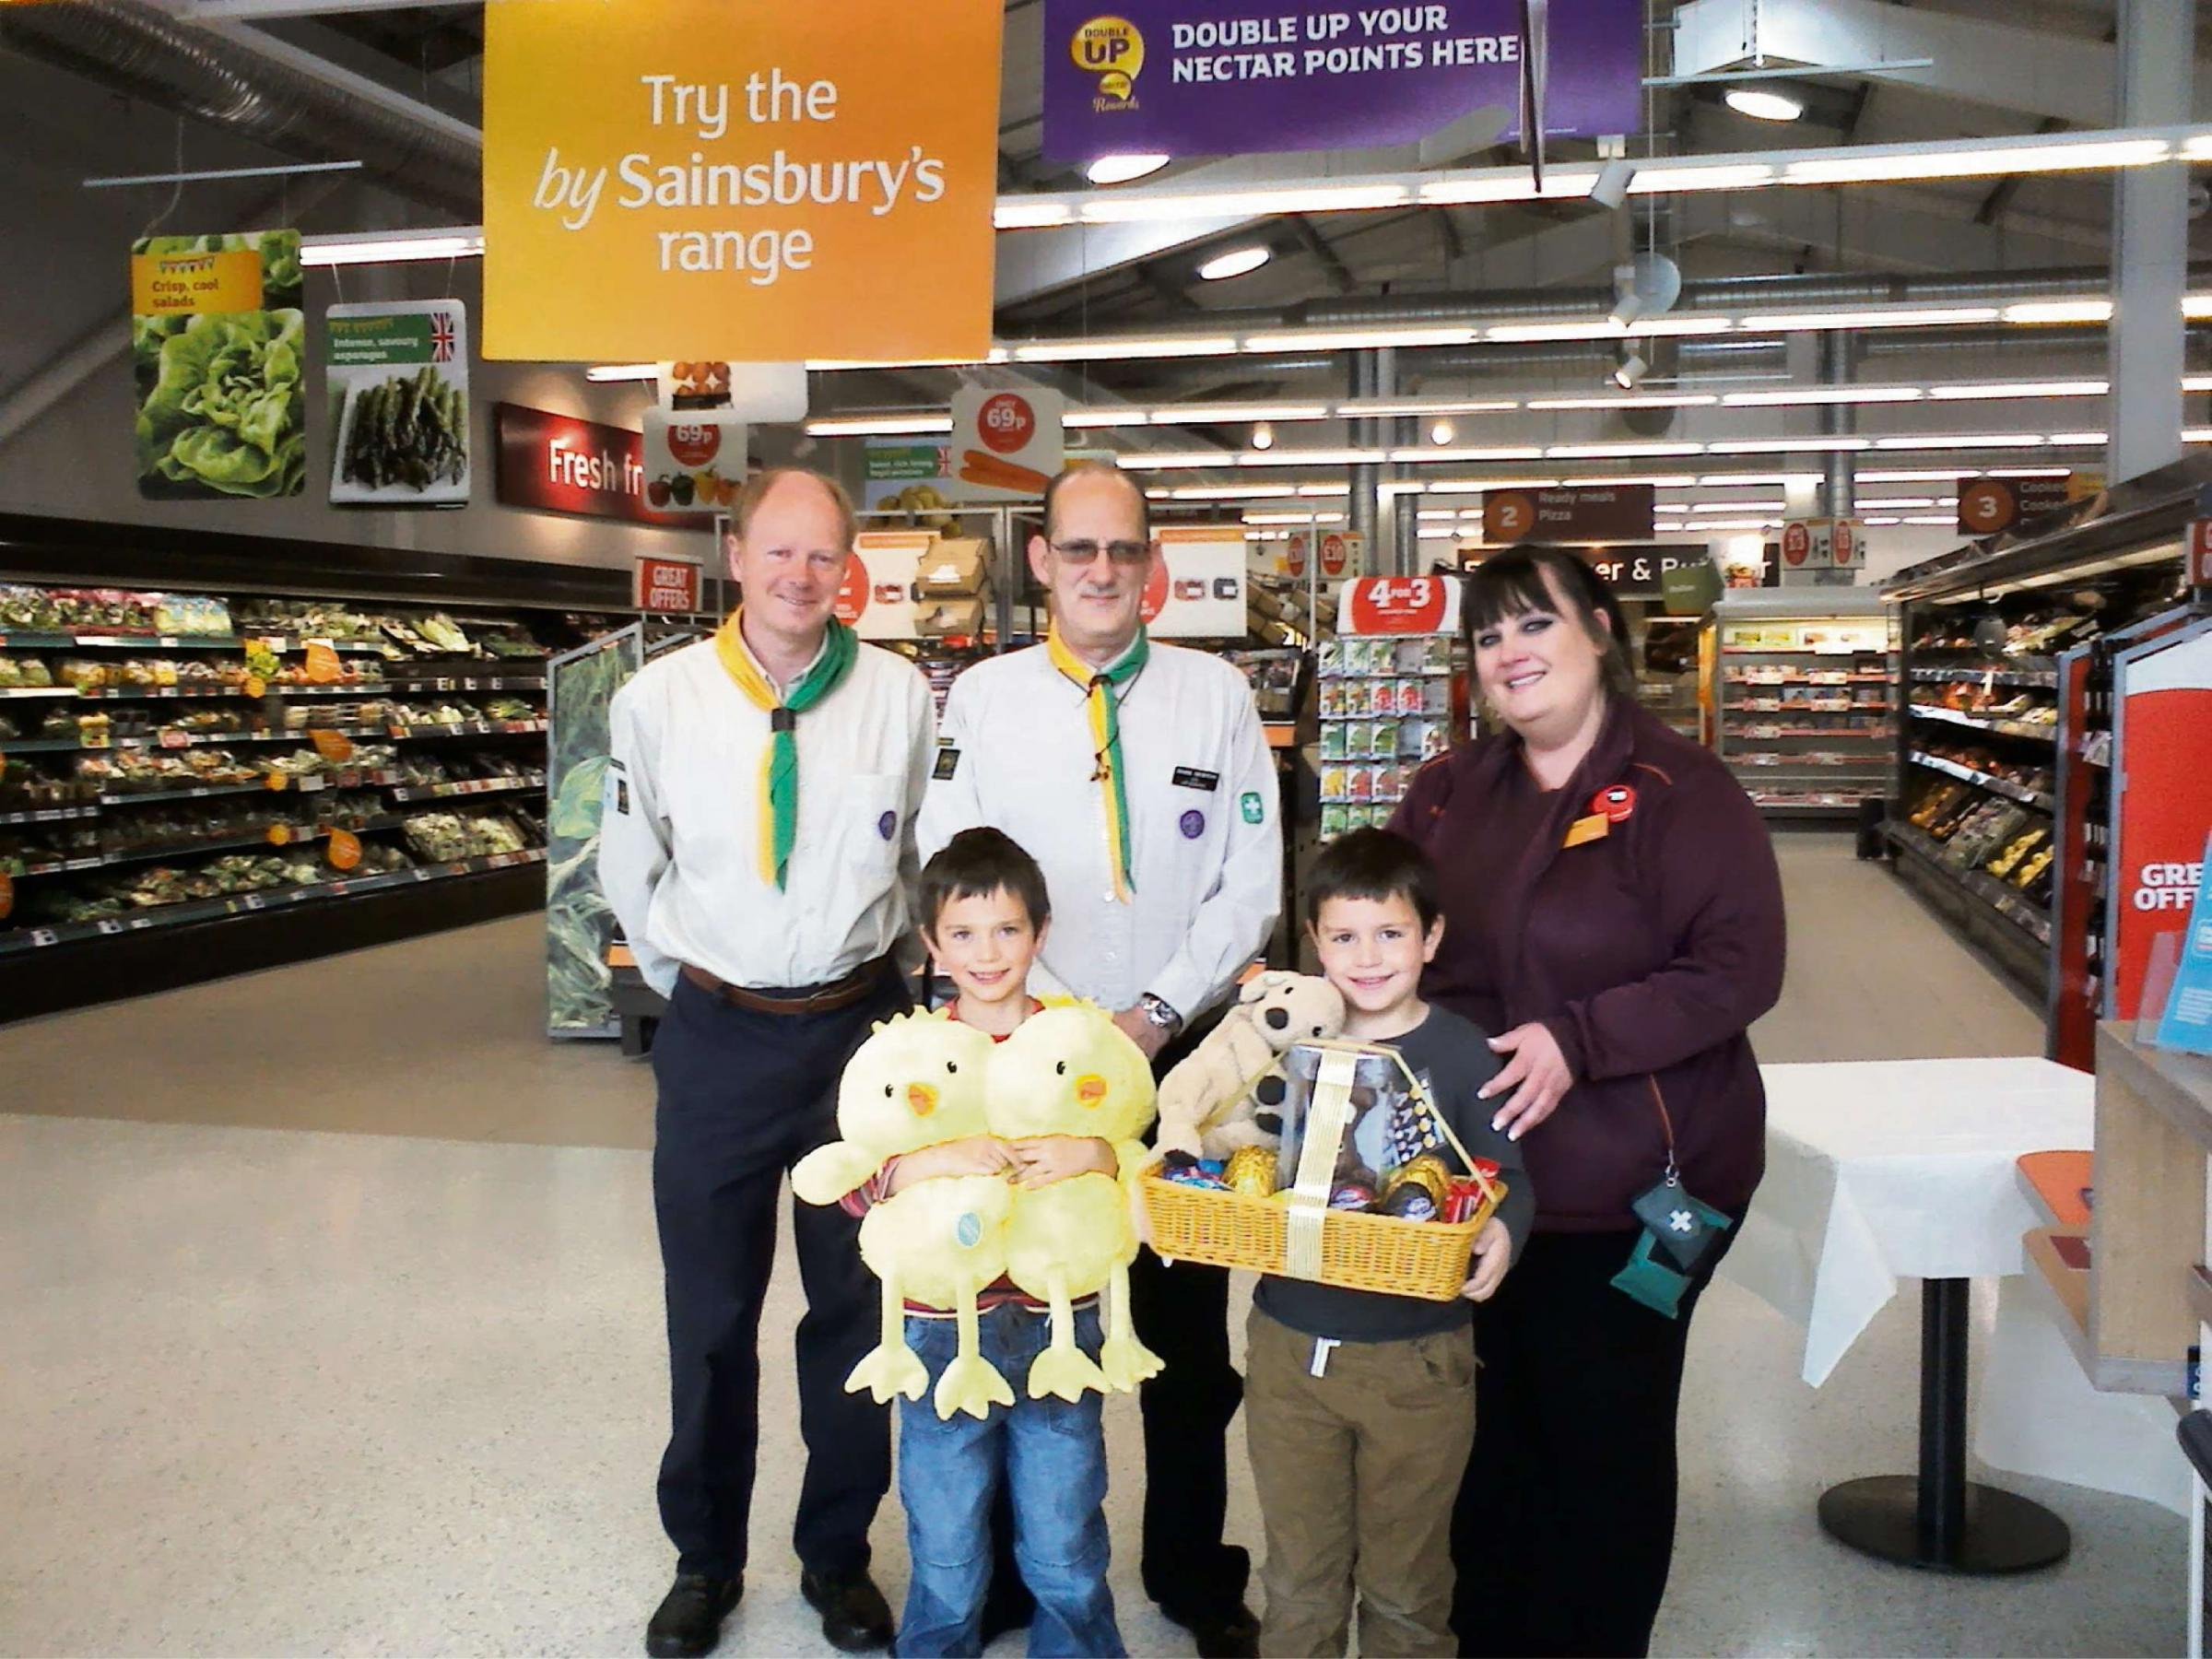 Brothers William and Isaac Irvine pictured won an Easter trail competition at Sainsbury's, with the proceeds going to First Dursley S